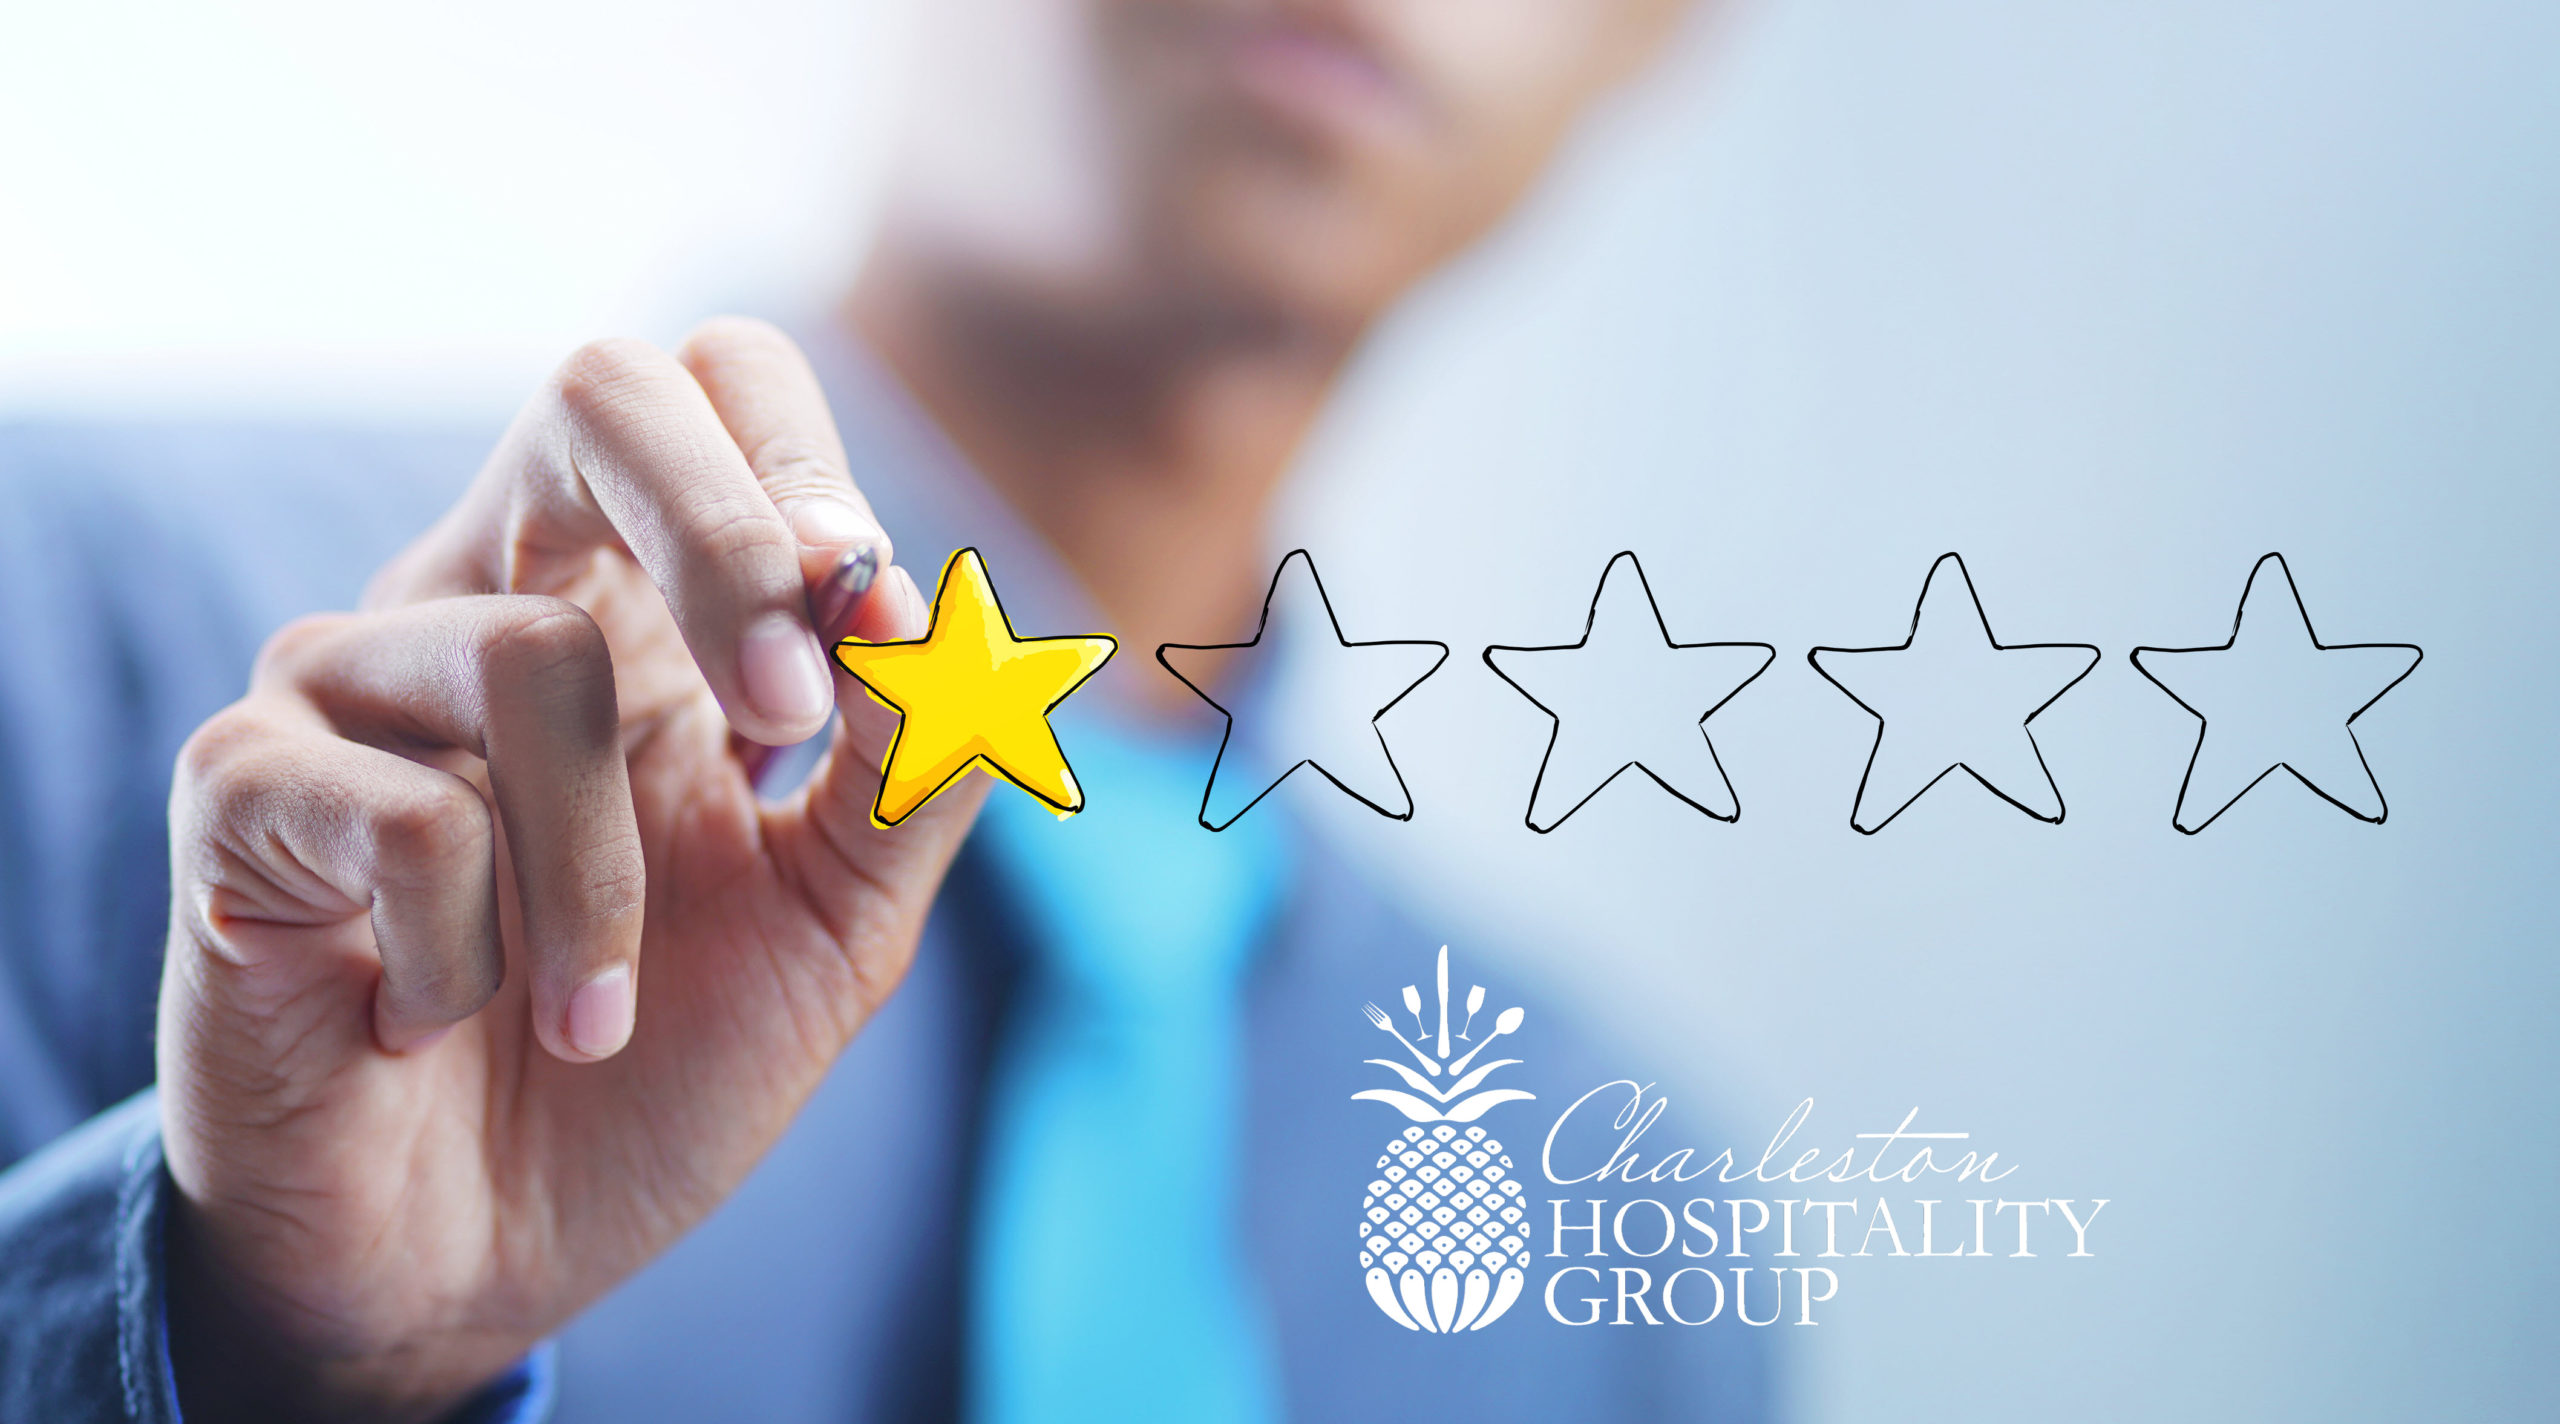 Online Reviews- Your Guest's First Impression